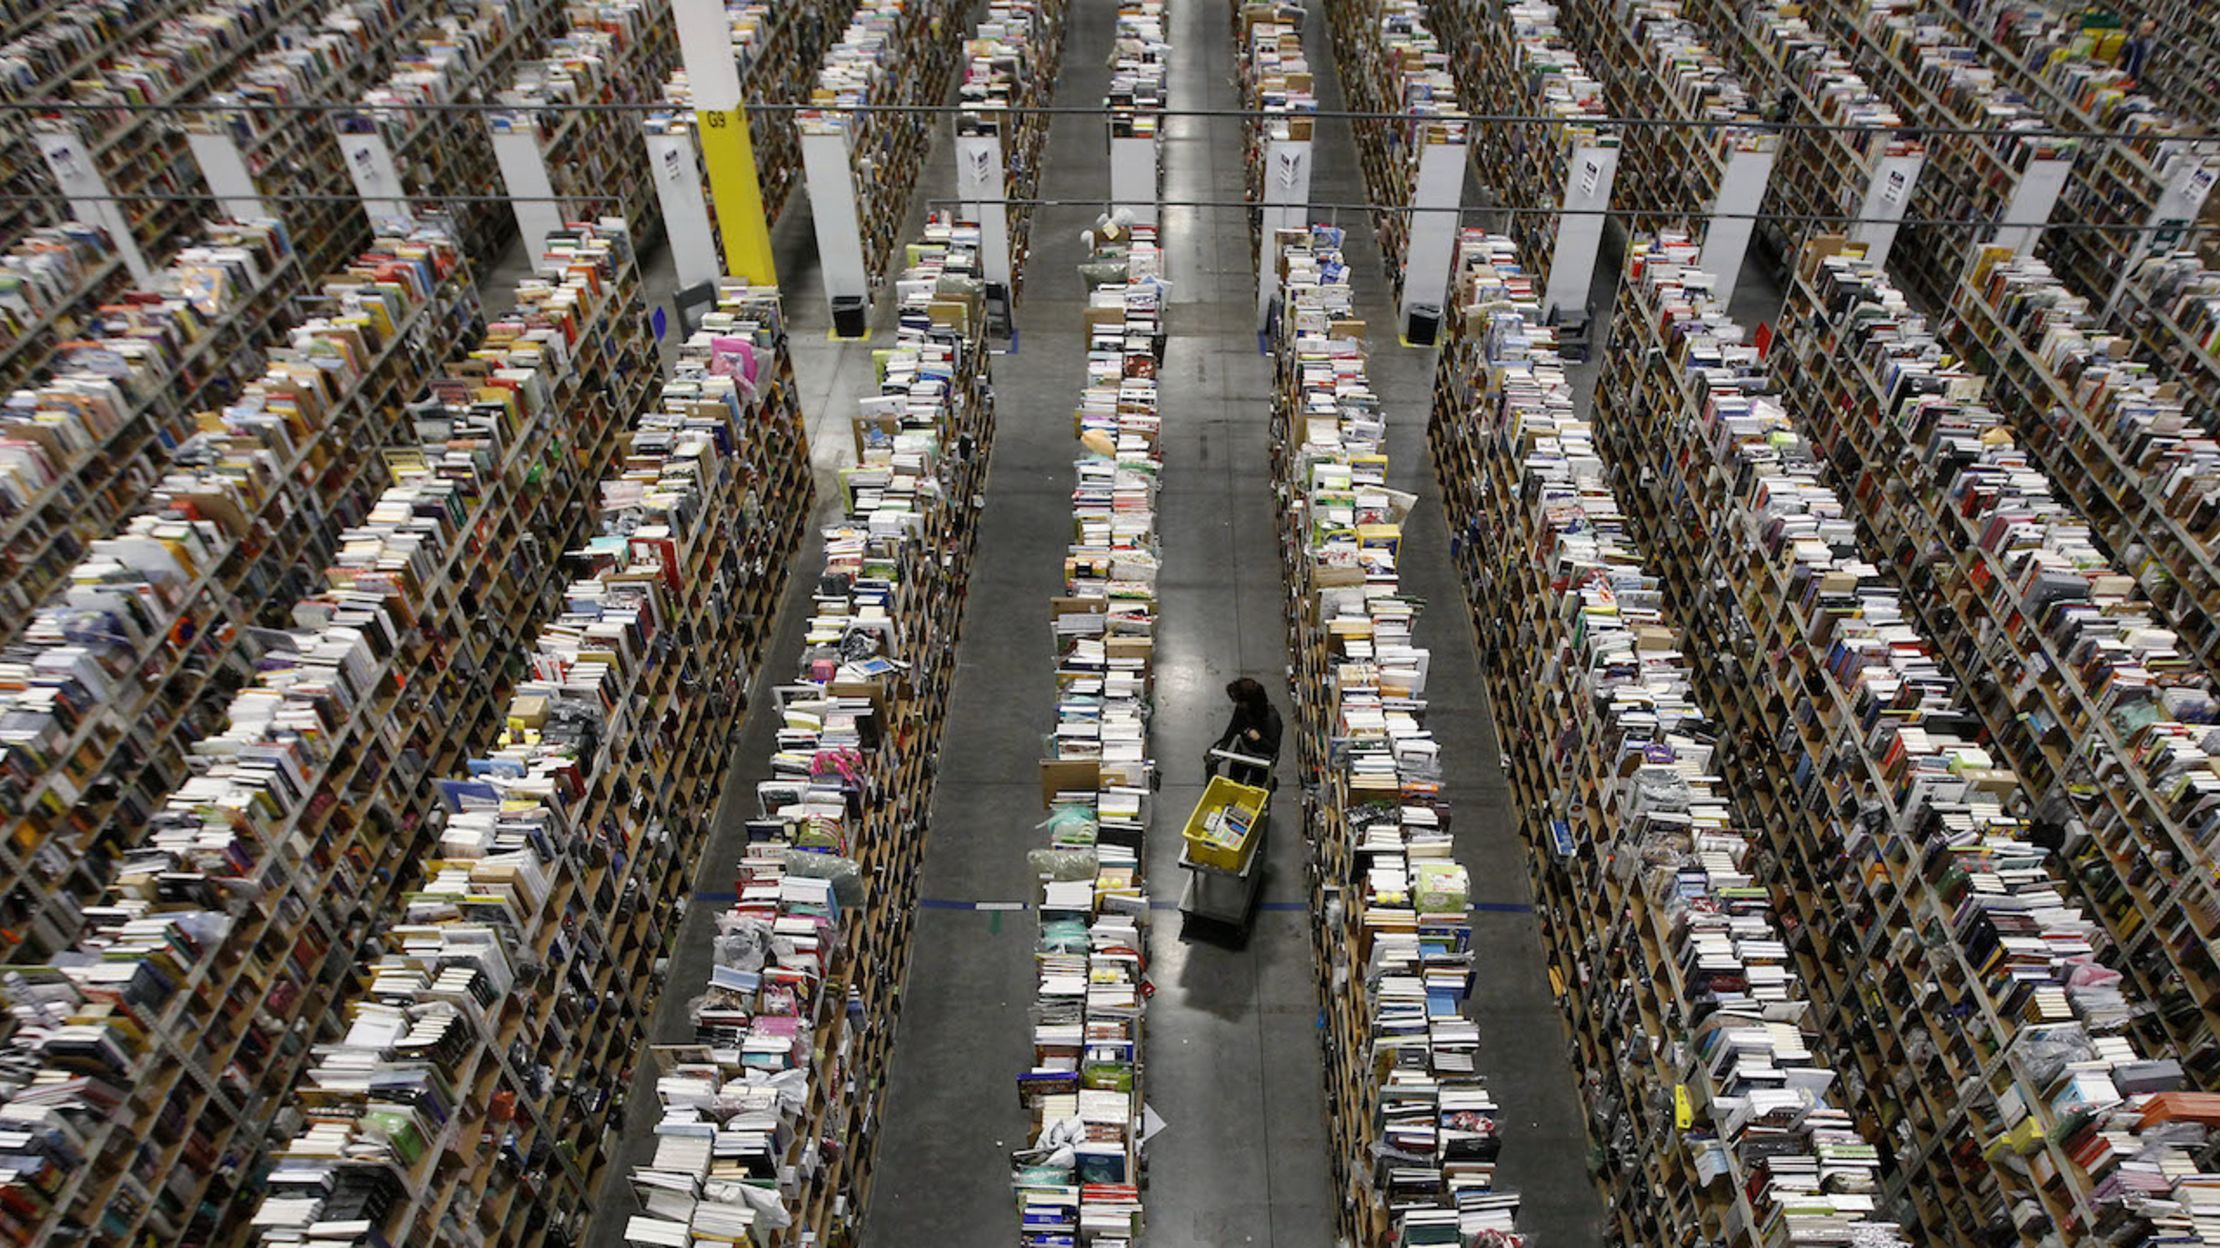 A lone worker pulls books from the endless shelves of the Amazon warehouse in Phoenix, AZ